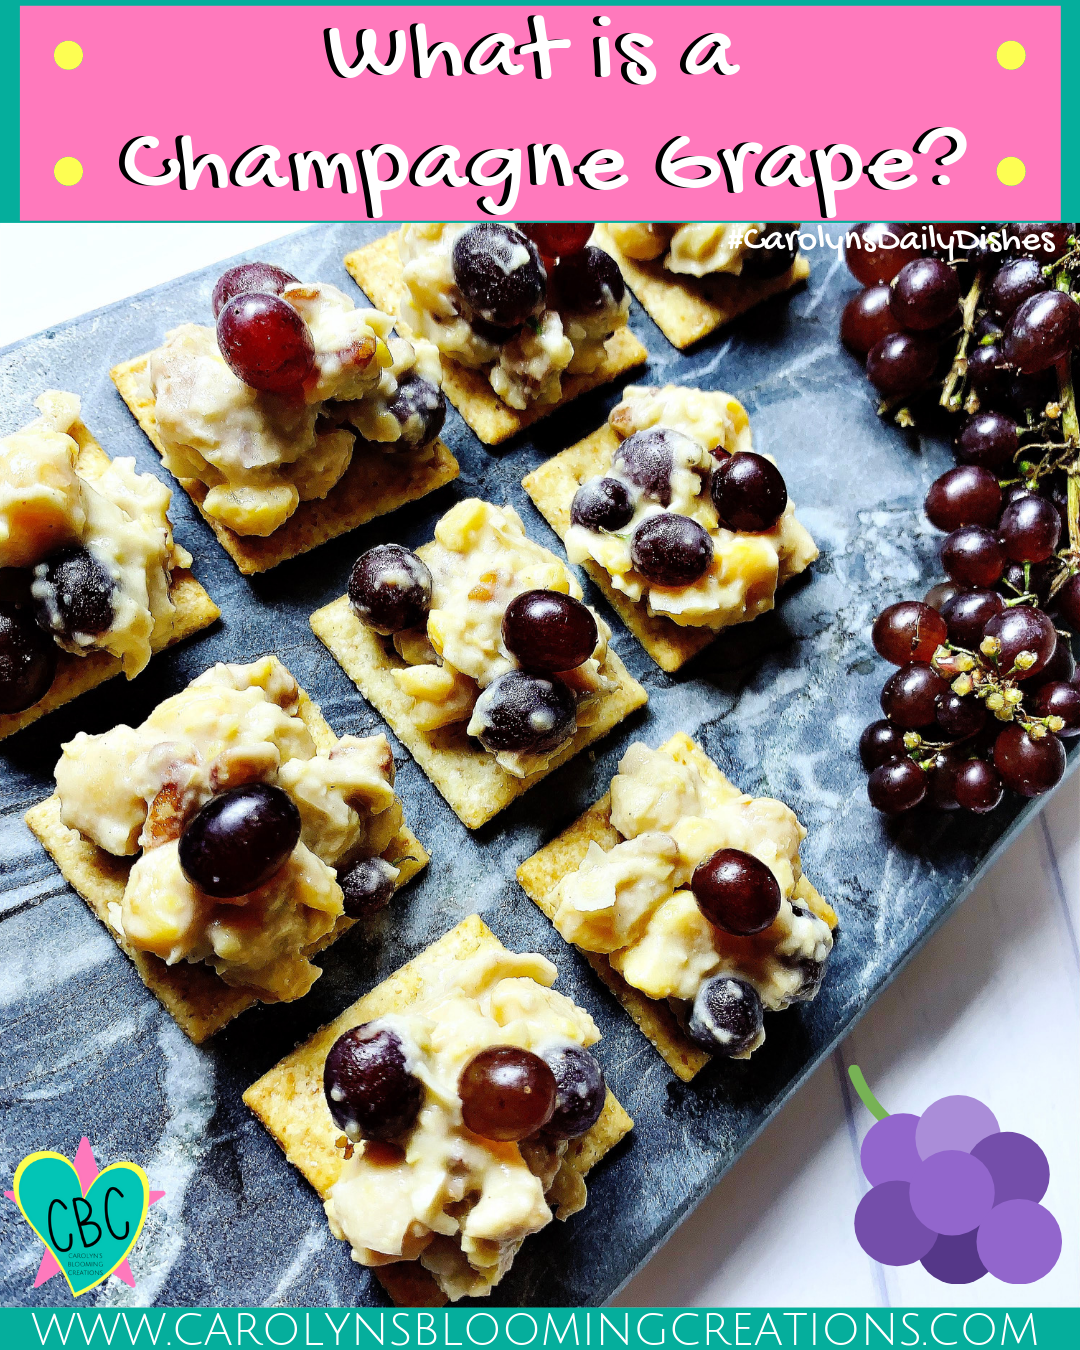 What Are Champagne Grapes and How to Eat Them!  Pin Me! www.carolynsbloomingcreations.com  Photography, recipe creation, food preparation and styling by Carolyn J. Braden